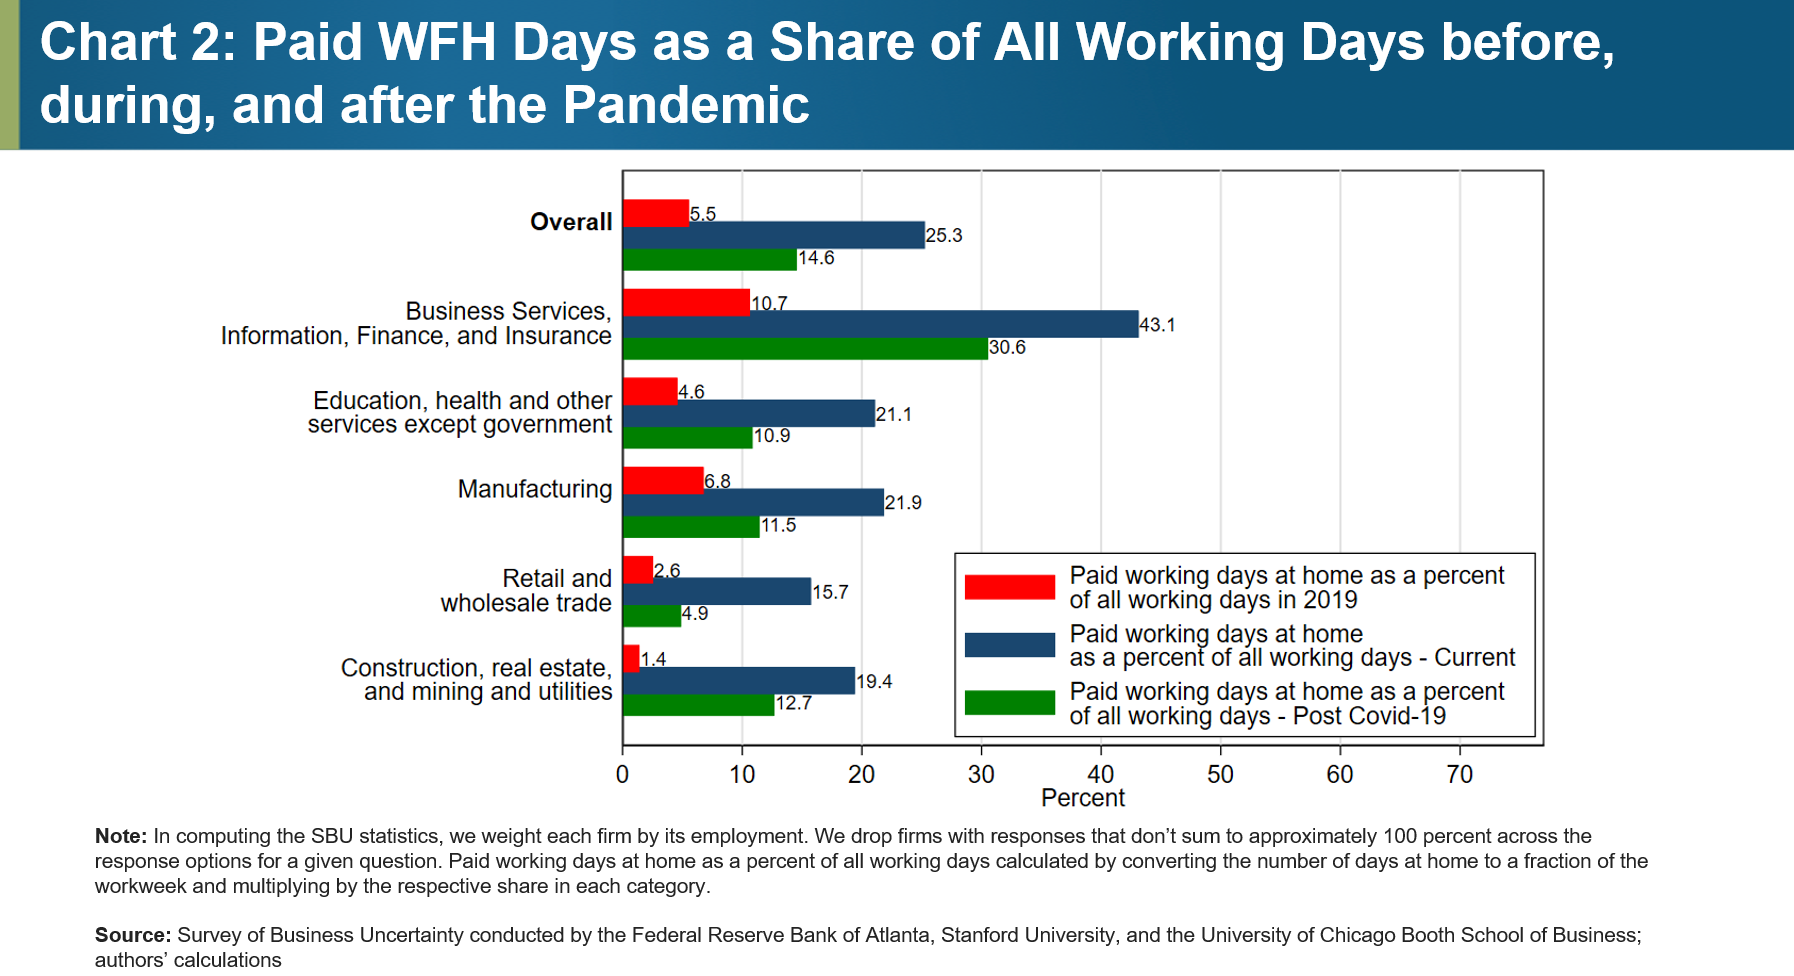 Chart 2: Paid WFH Days as a Share of All Working Days before, during, and after the Pandemic